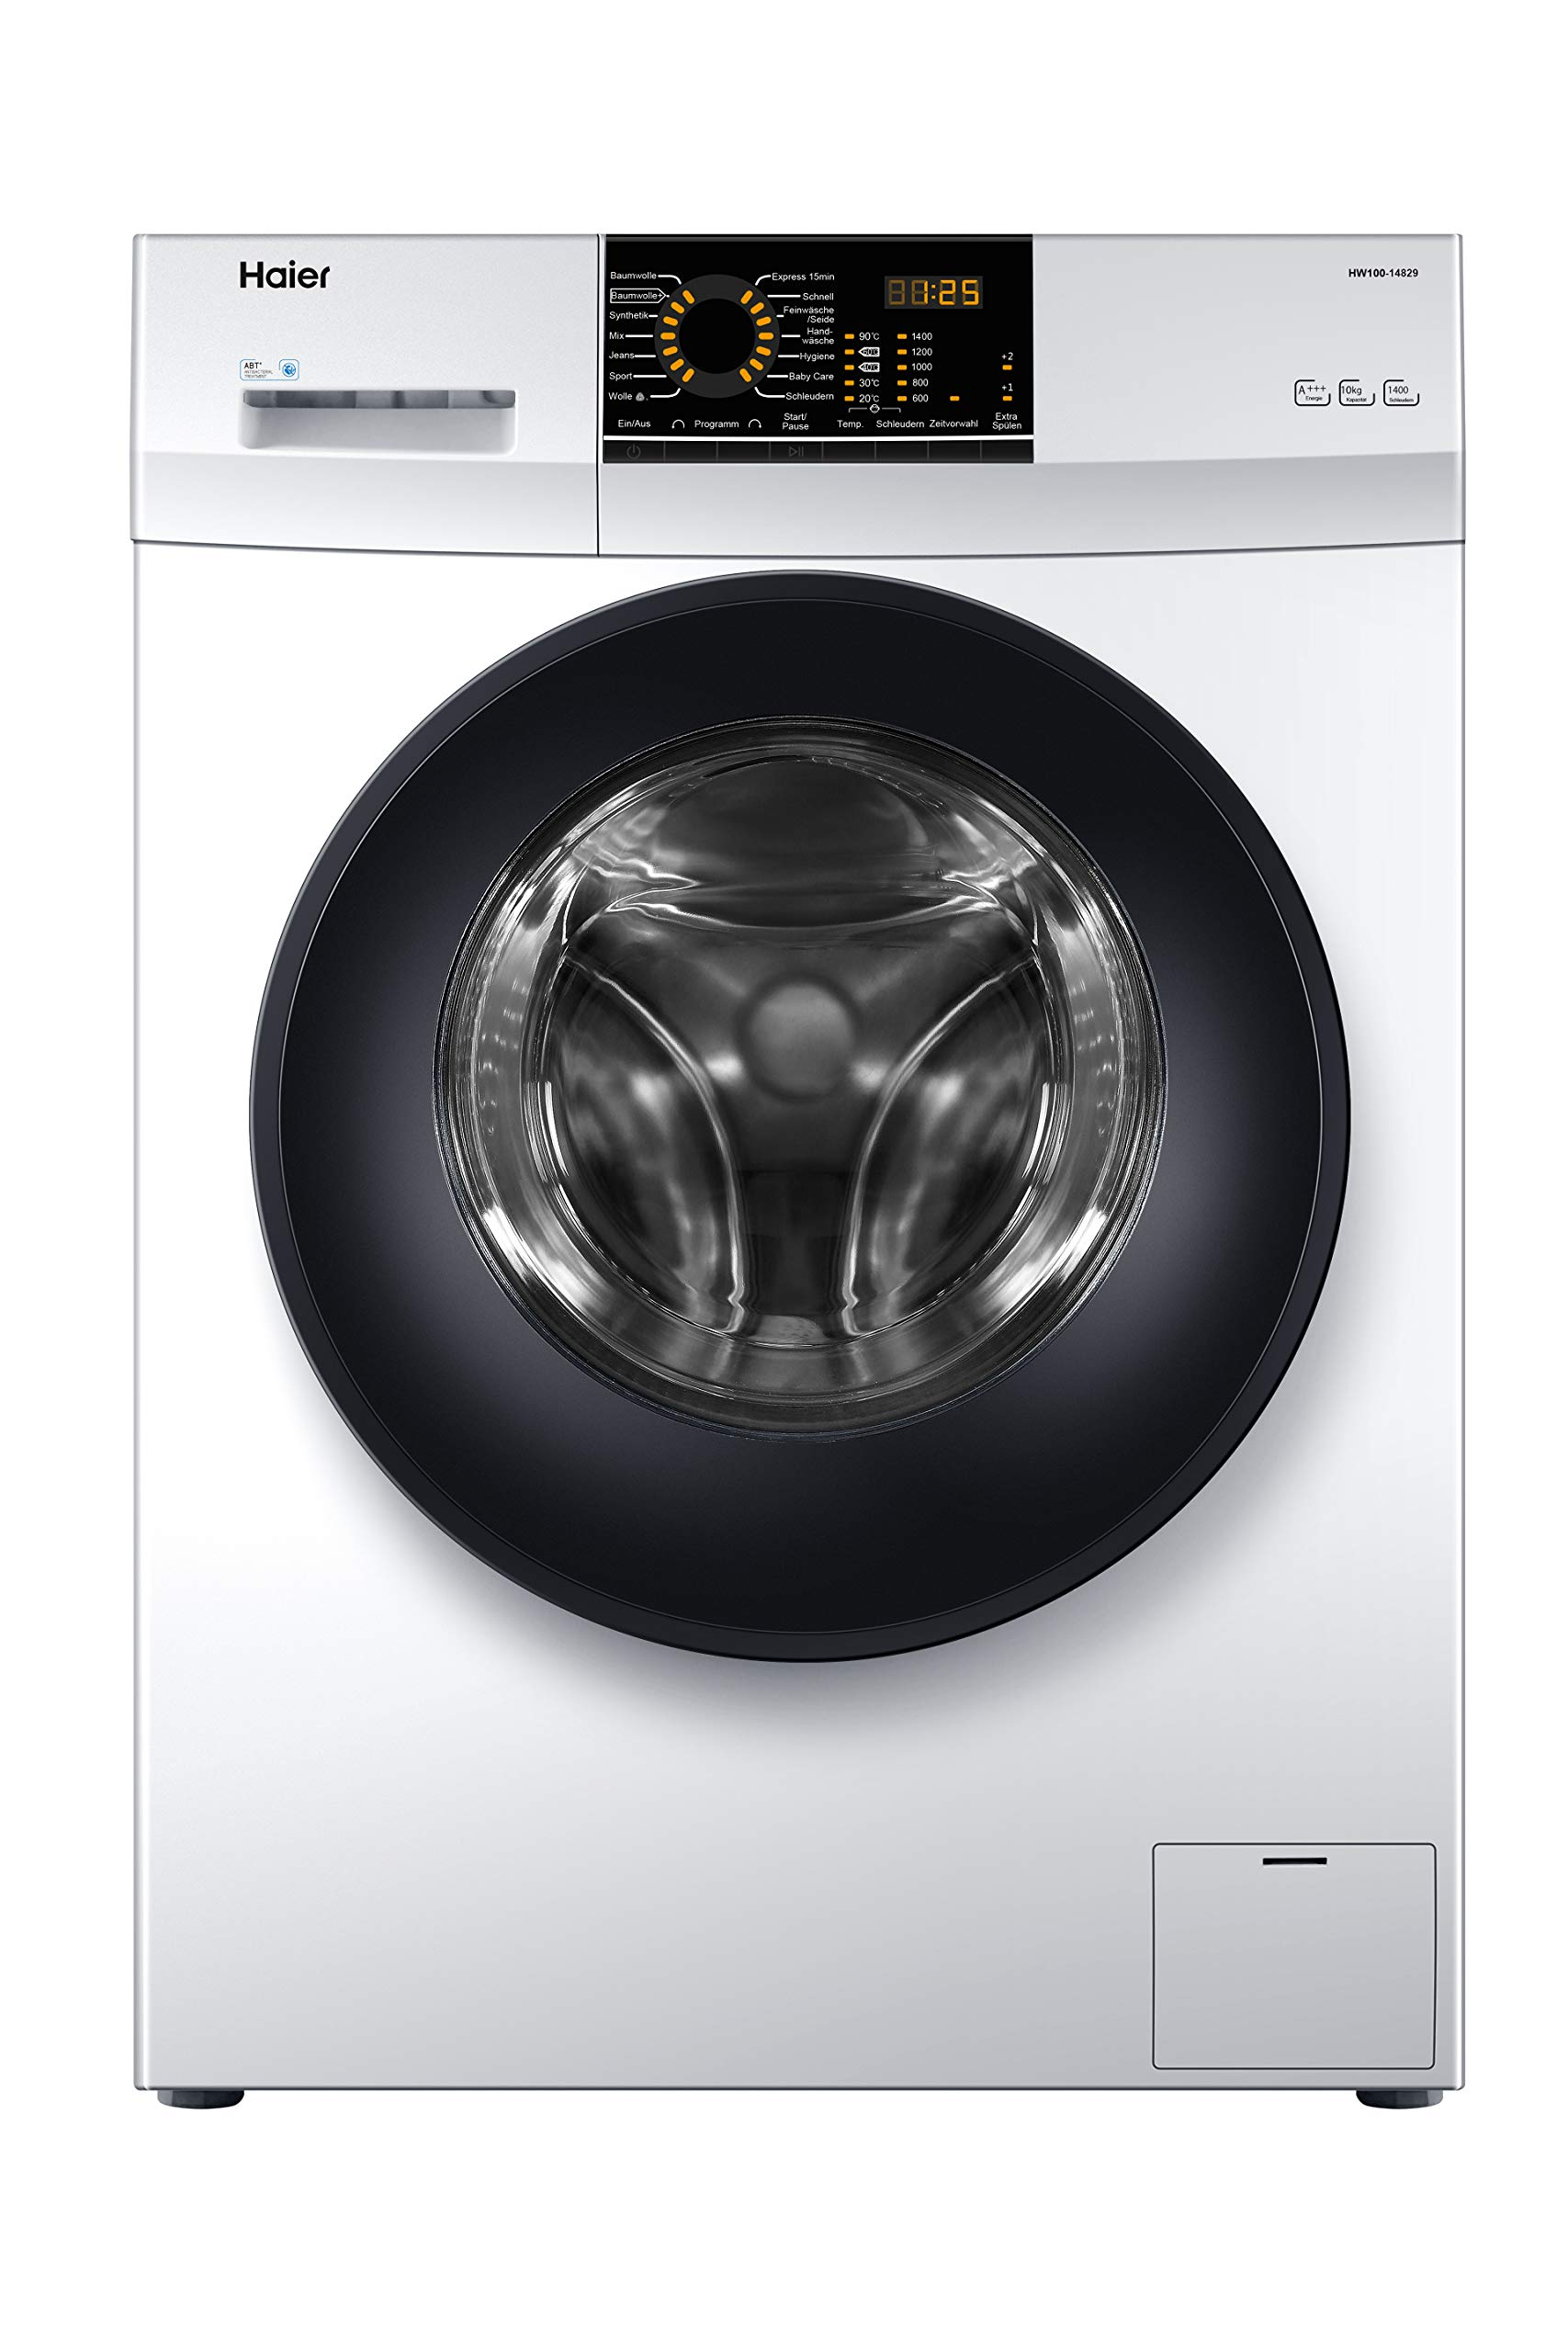 Haier-HW100-14829-Waschmaschine-Frontlader-10-kgA-1400-UpMABTAquaProtect